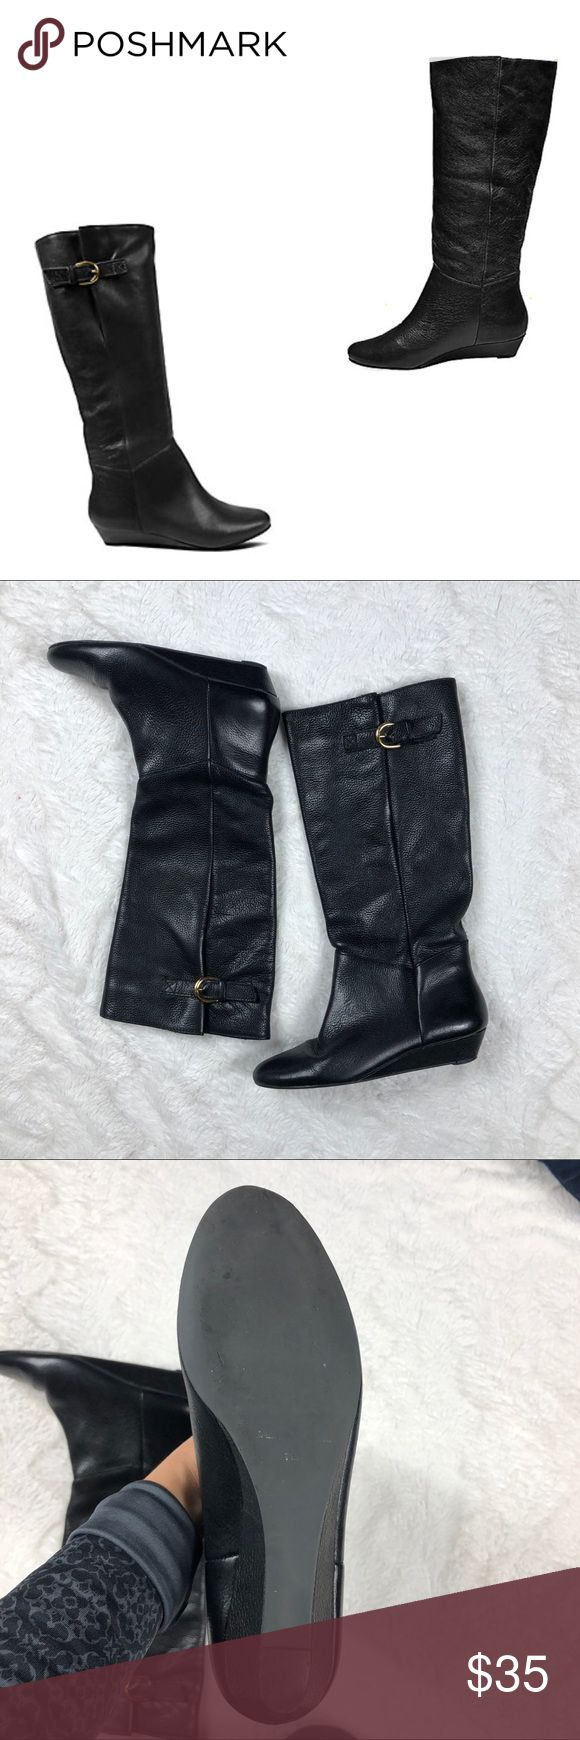 Steve Madden INTYCE Boots The INTYCE is just plain gorgeous! Show off the buckle detail by pulling them over your skinny jeans, or pair them with your favorite mini dress for a full-blown fashion look. Pre-owned in good condition very little signs of wear, see pictures.  Leather upper material Man-made sole 1 inch sliver wedge Approx. 20 inch shaft circumference 15.75 inch shaft height Steven by Steve Madden Steve Madden Shoes Heeled Boots